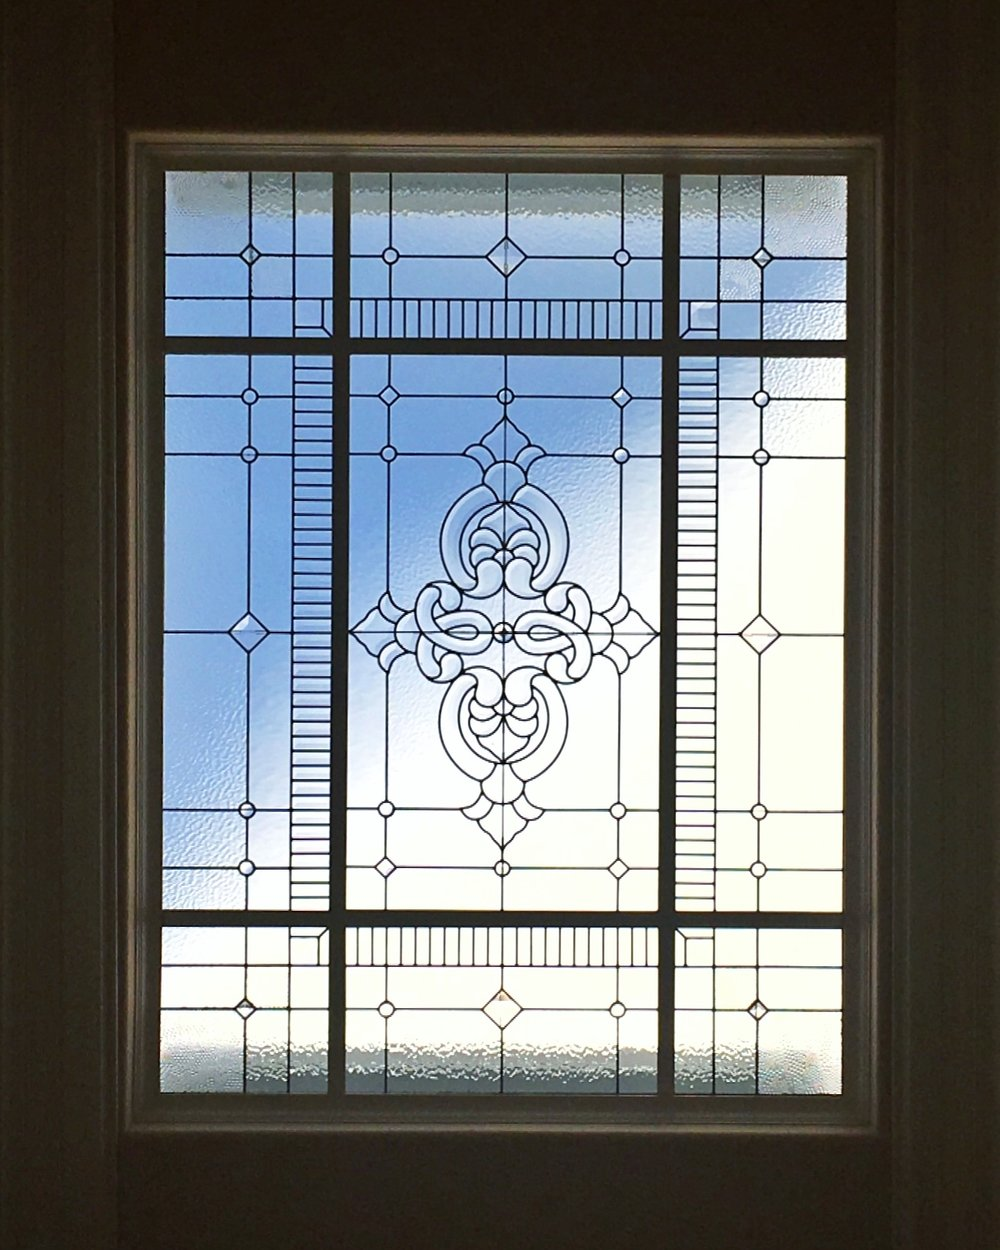 bevel cluster intricate leaded glass stained glass skylight clear textured glass palo alto atherton menlo park san jose san francisco bay area legacy glass.JPG